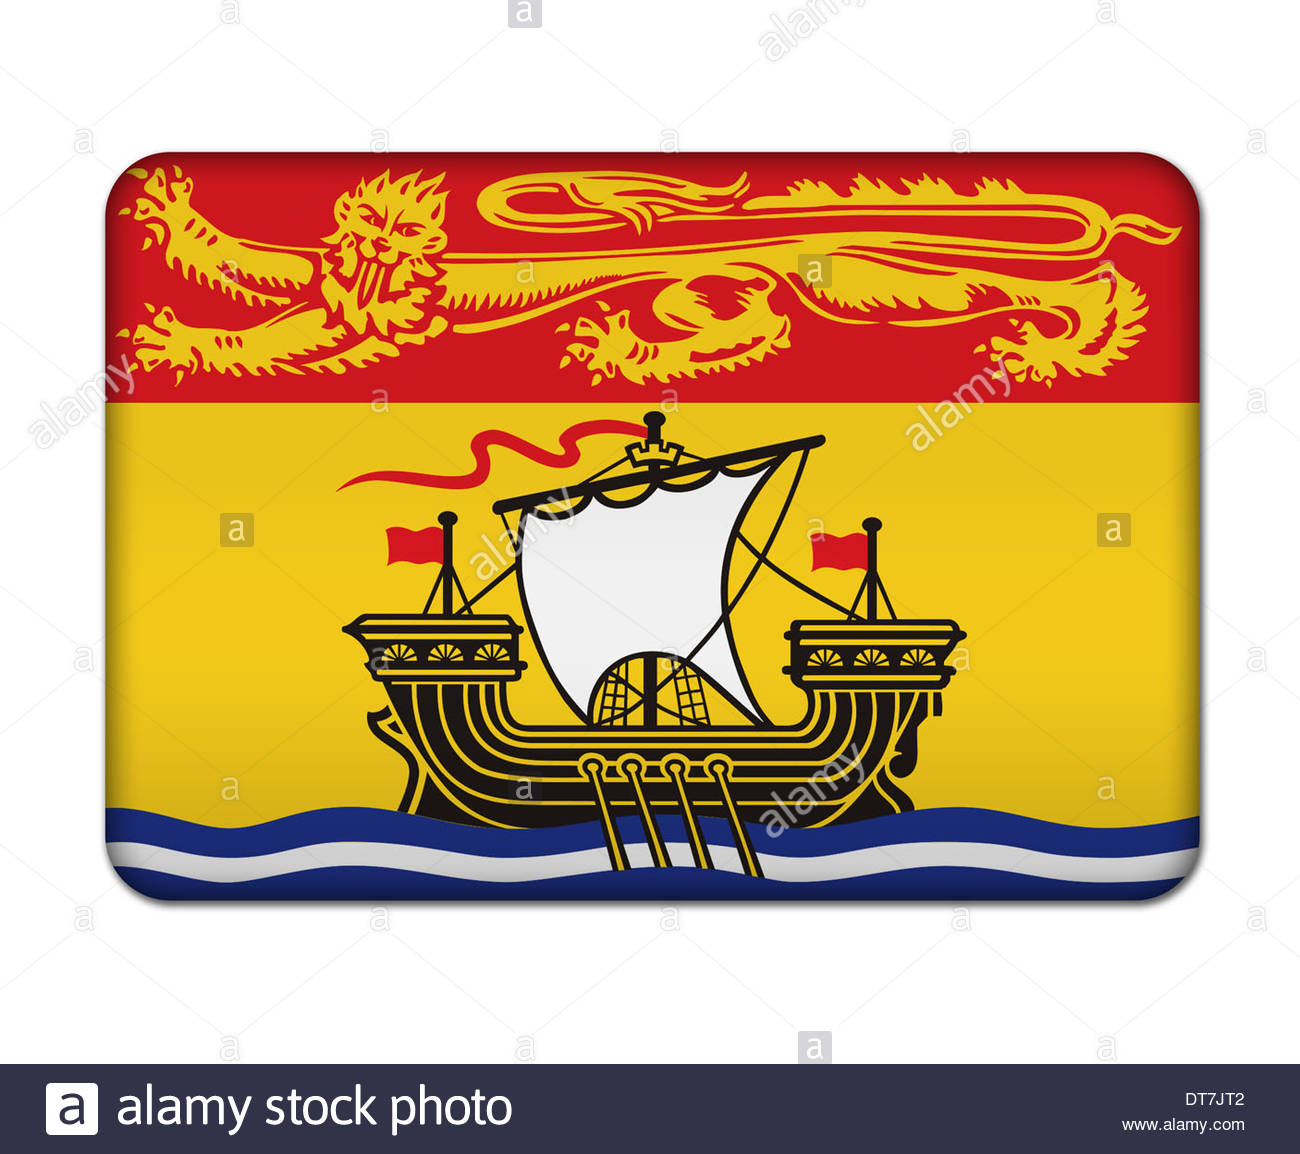 New brunswick flag cut out stock images pictures alamy new brunswick canada flag icon banner logo sign stock image publicscrutiny Images